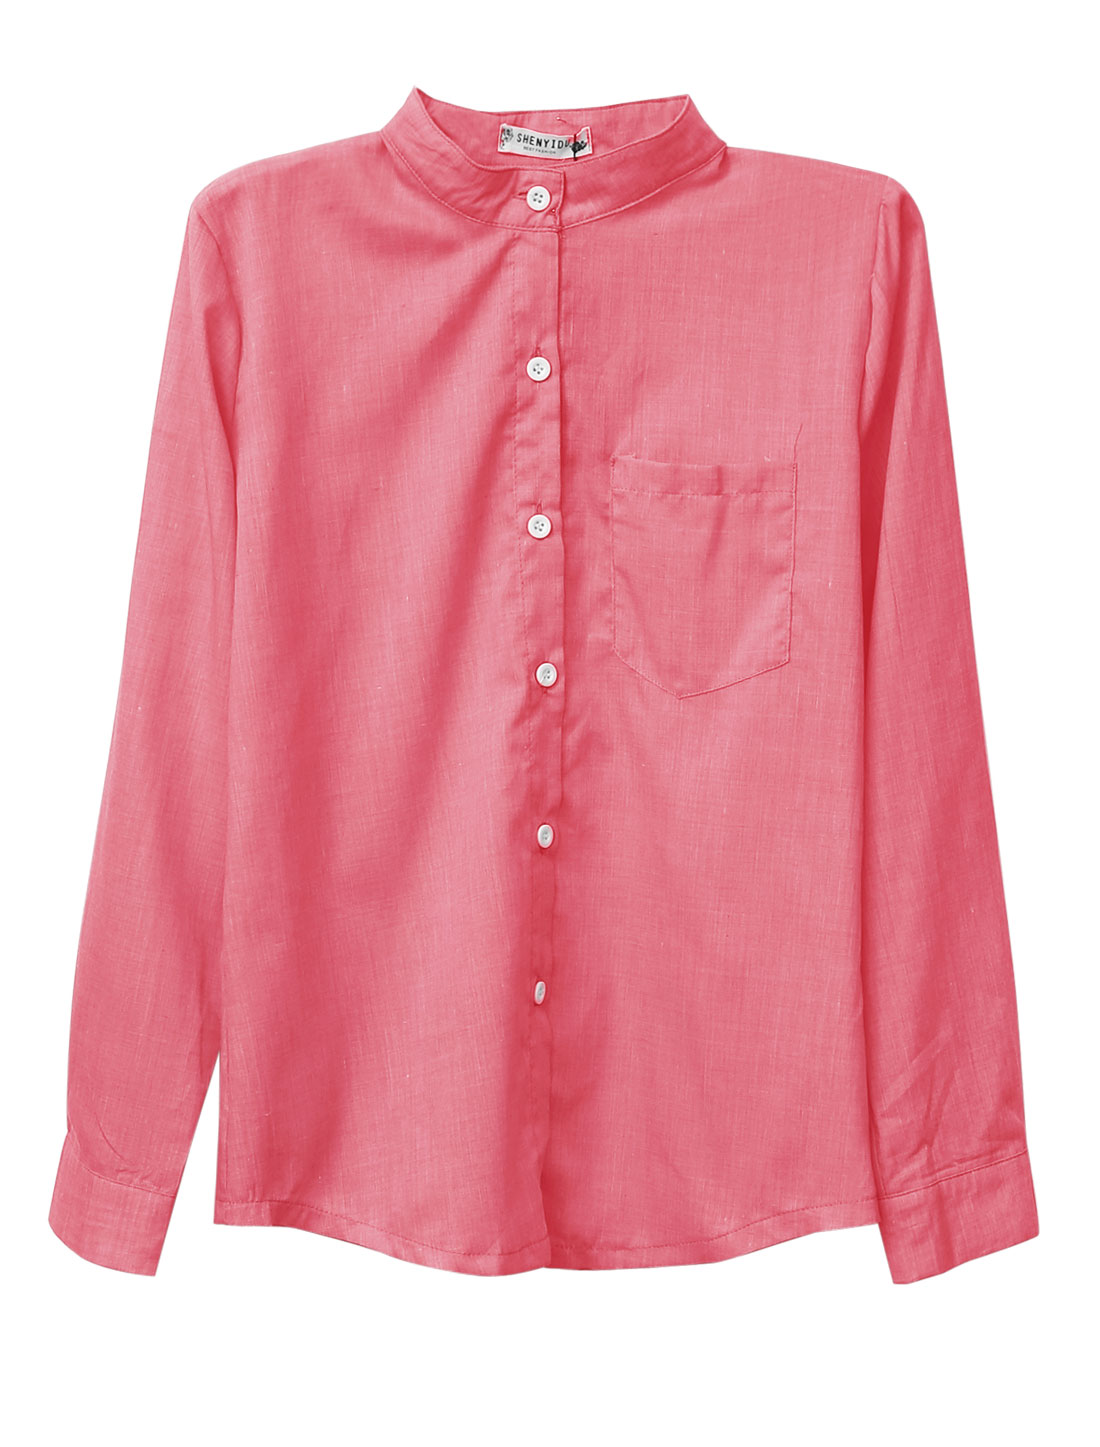 Lady Stand Collar Single Breasted One Pocket Chest Casual Shirt Deep Pink S